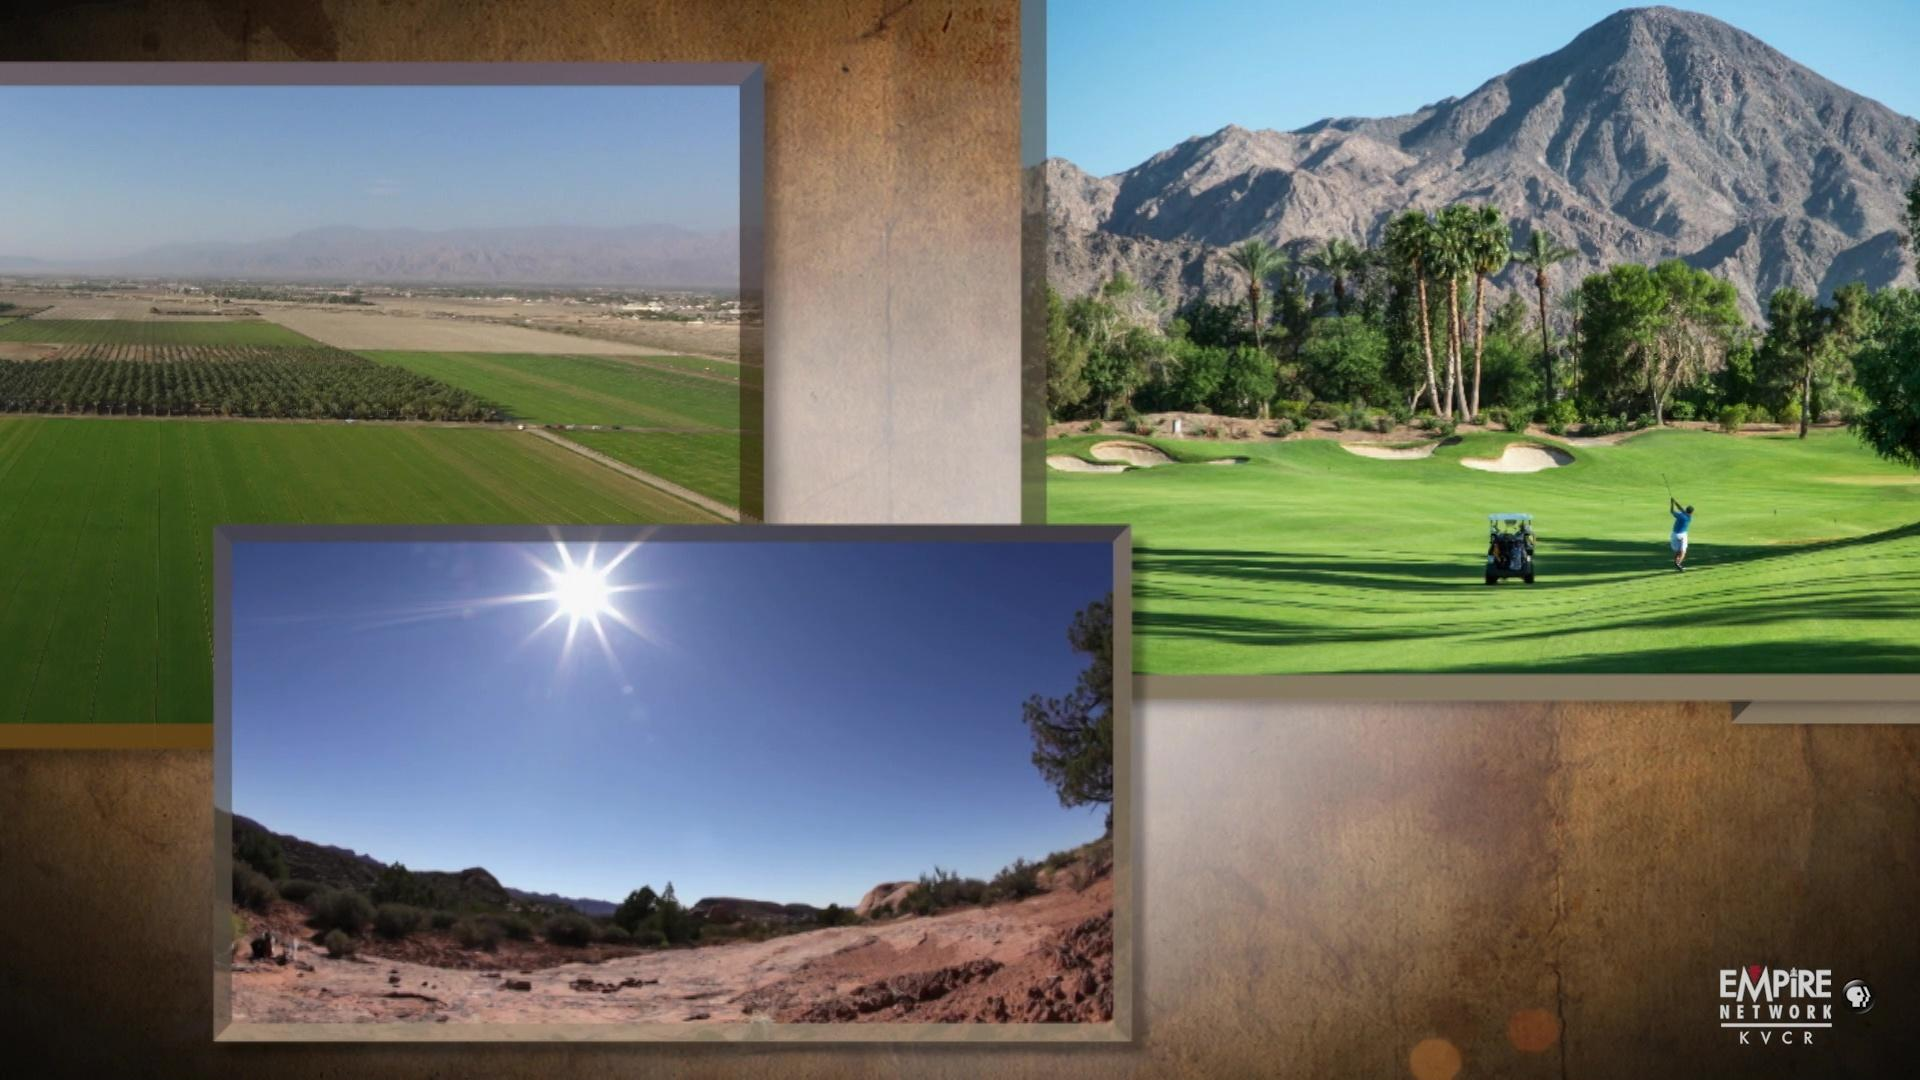 3: Coachella Valley, an Oasis in the Desert